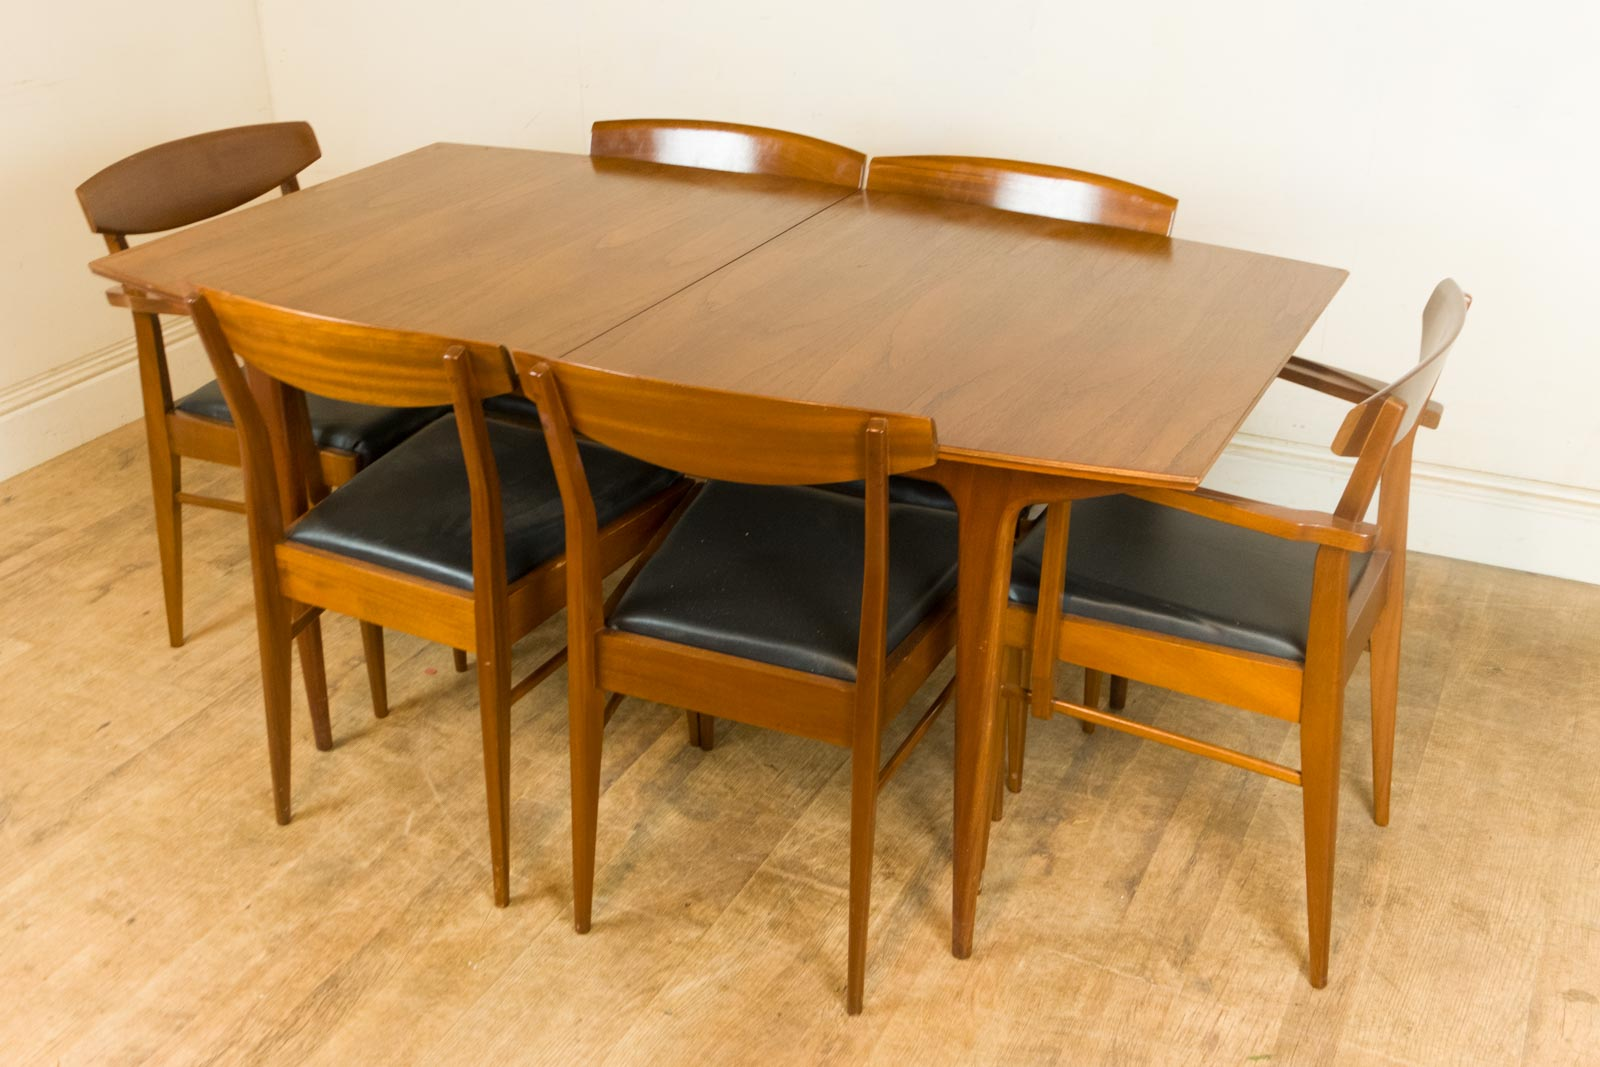 vintage retro mid century teak extending dining table and 6 chairs by mcintosh. Black Bedroom Furniture Sets. Home Design Ideas